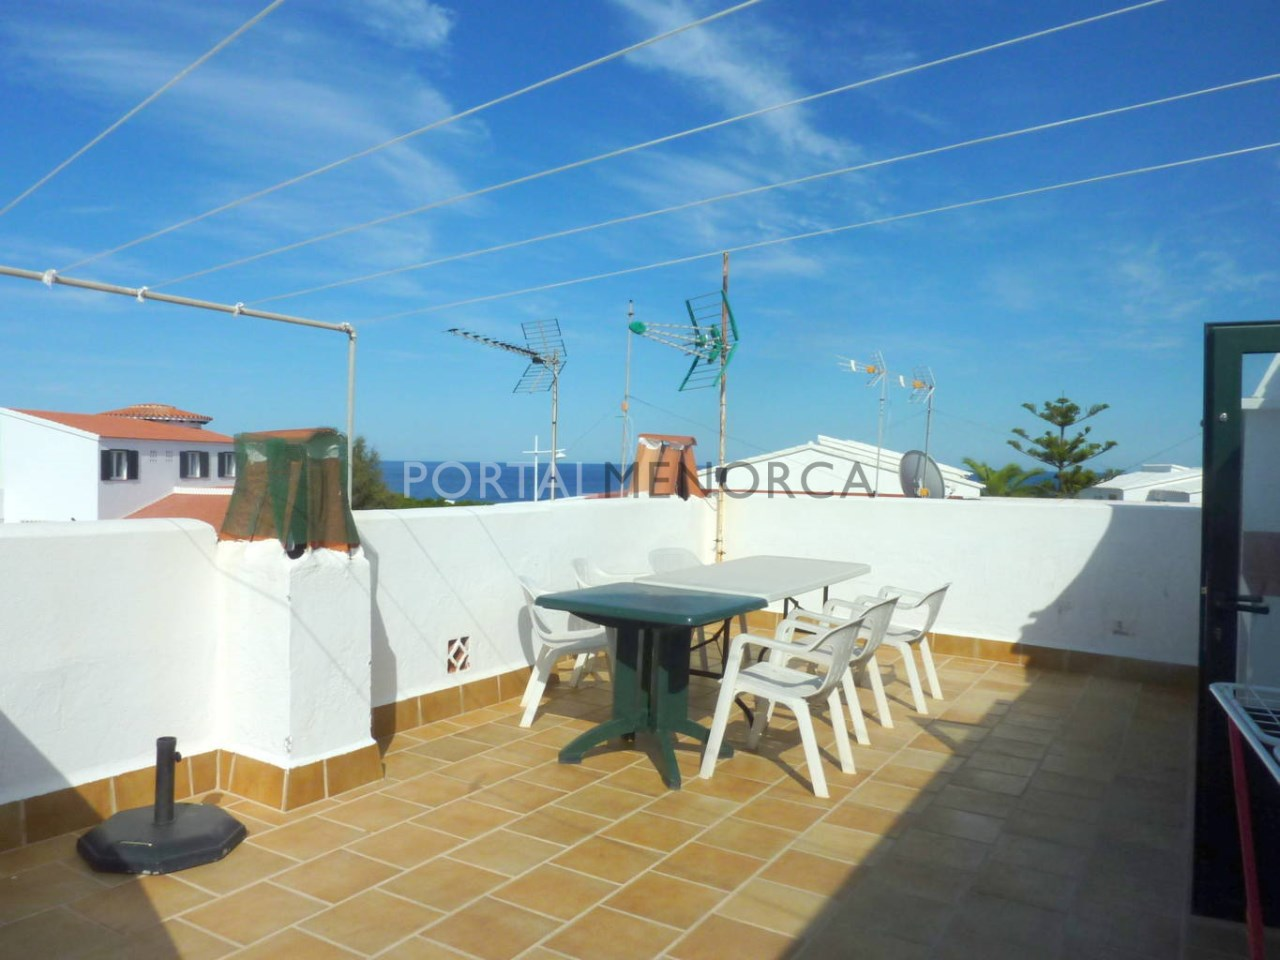 Apartment for sale in S'Algar, Menorca with sea view and terrace